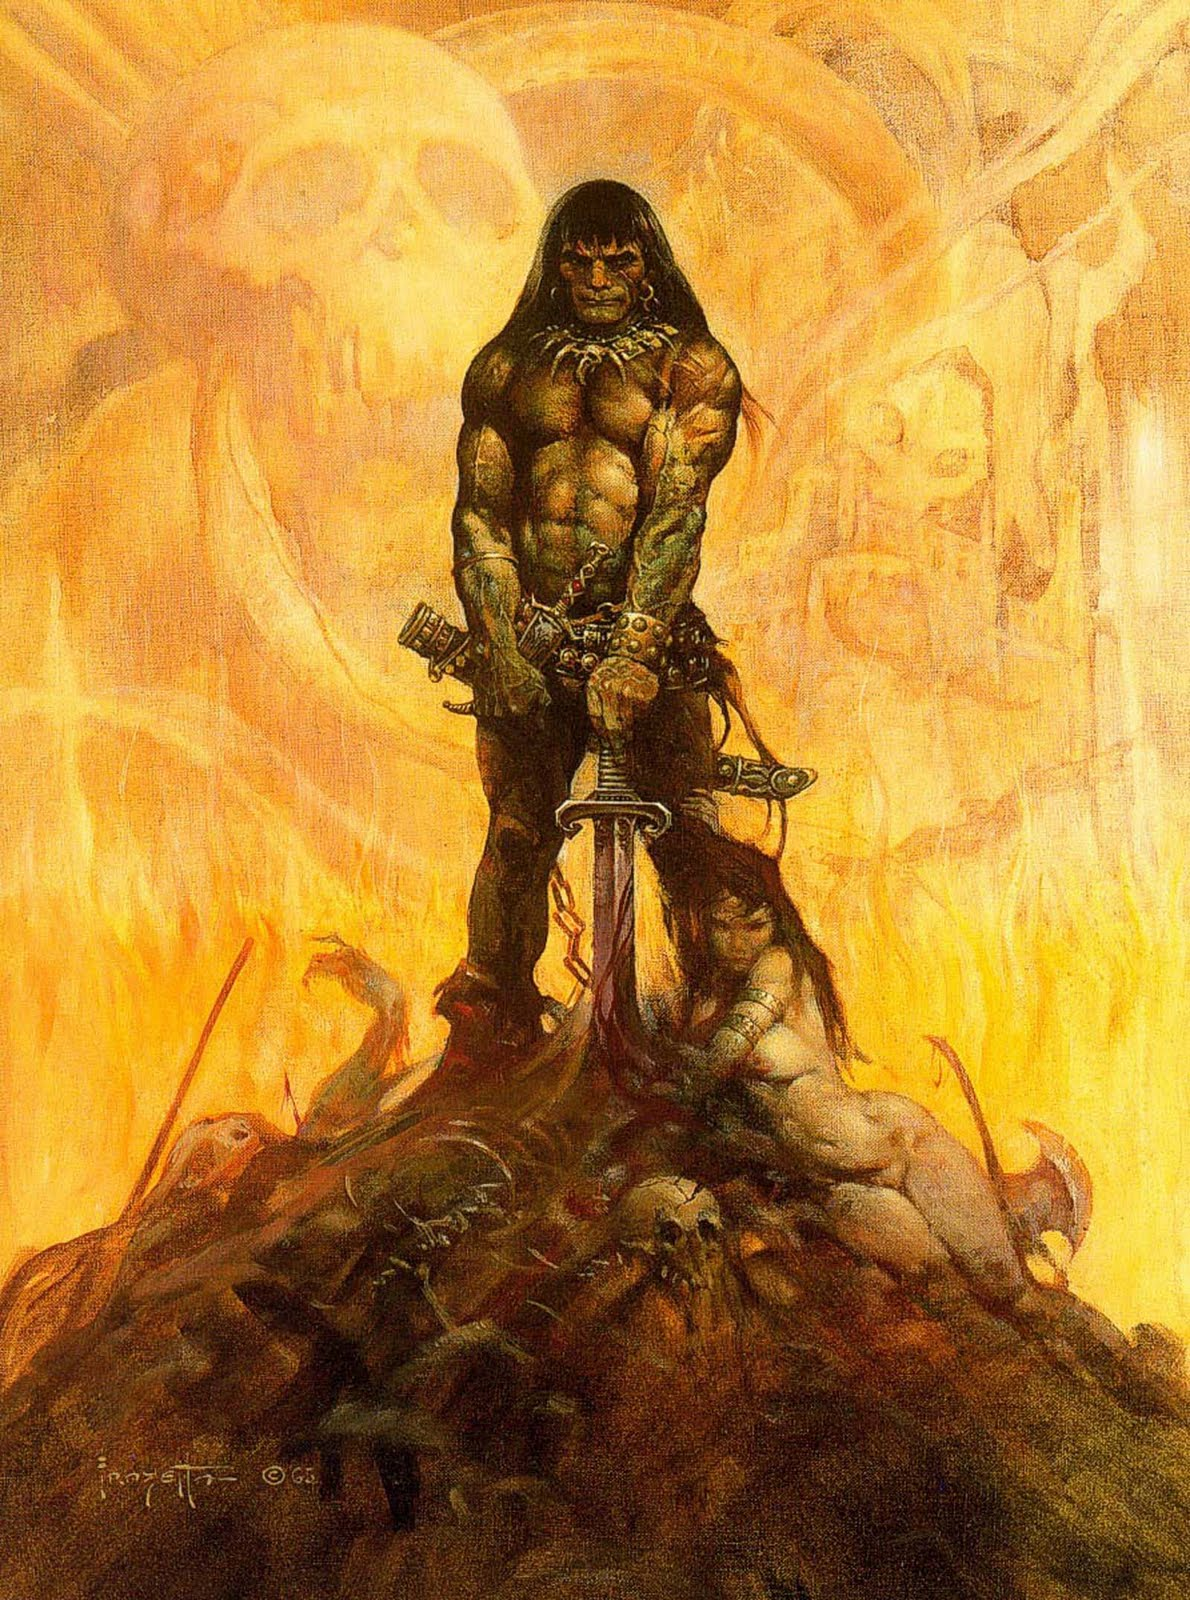 Conan the Barbarian - by Frank Frazetta